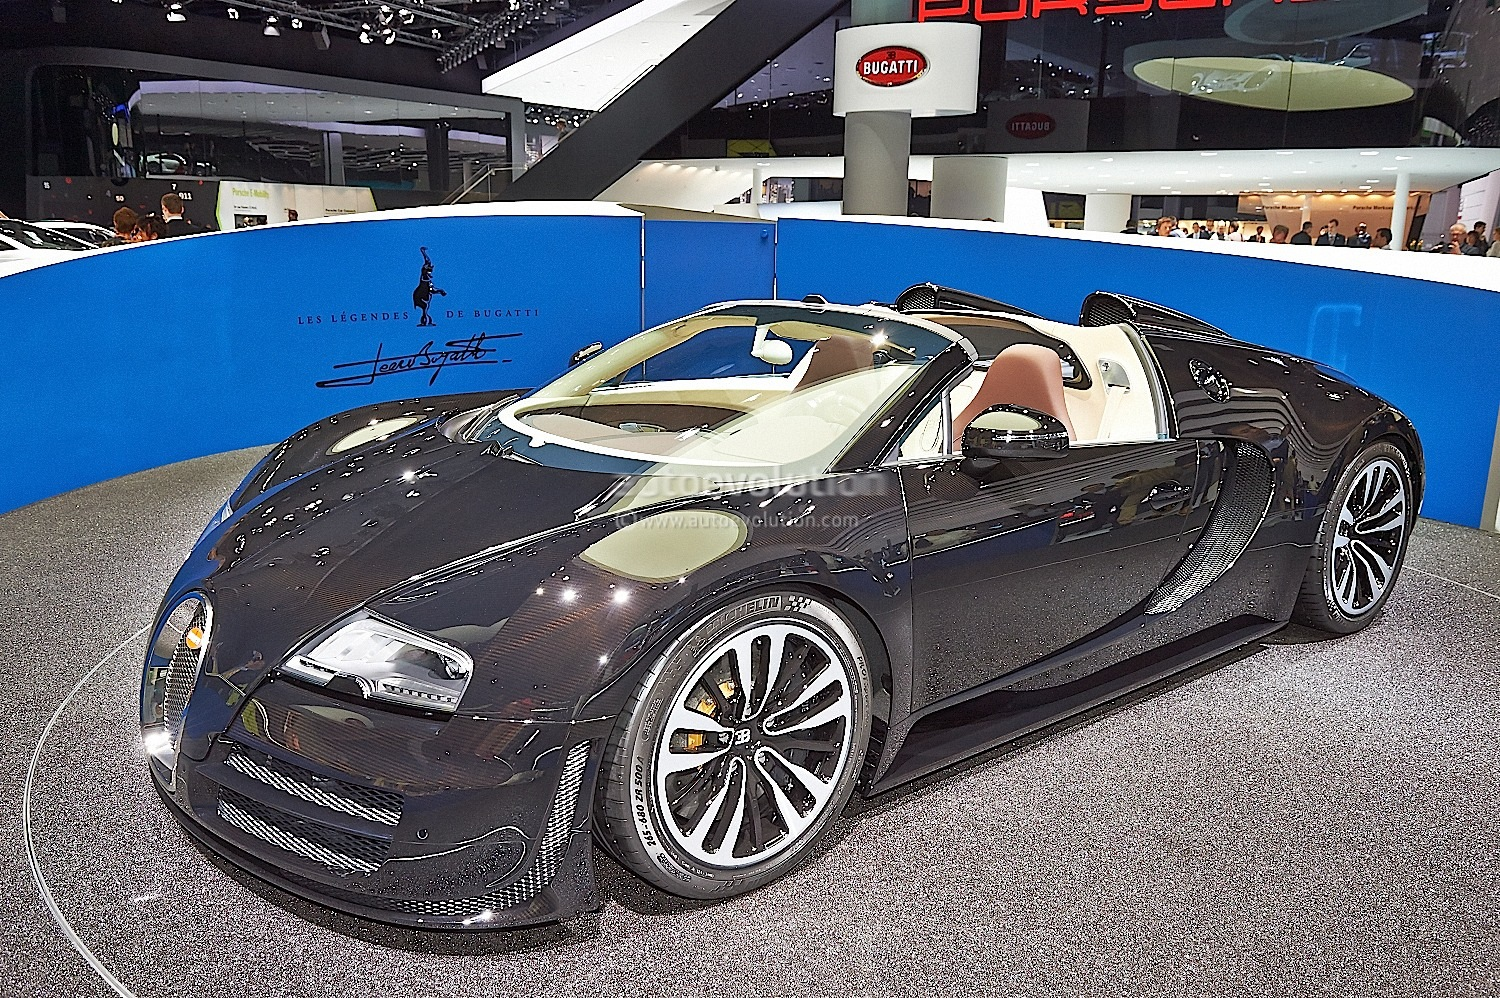 2013 bugatti veyron grand sport record youtube rachael edwards. Black Bedroom Furniture Sets. Home Design Ideas